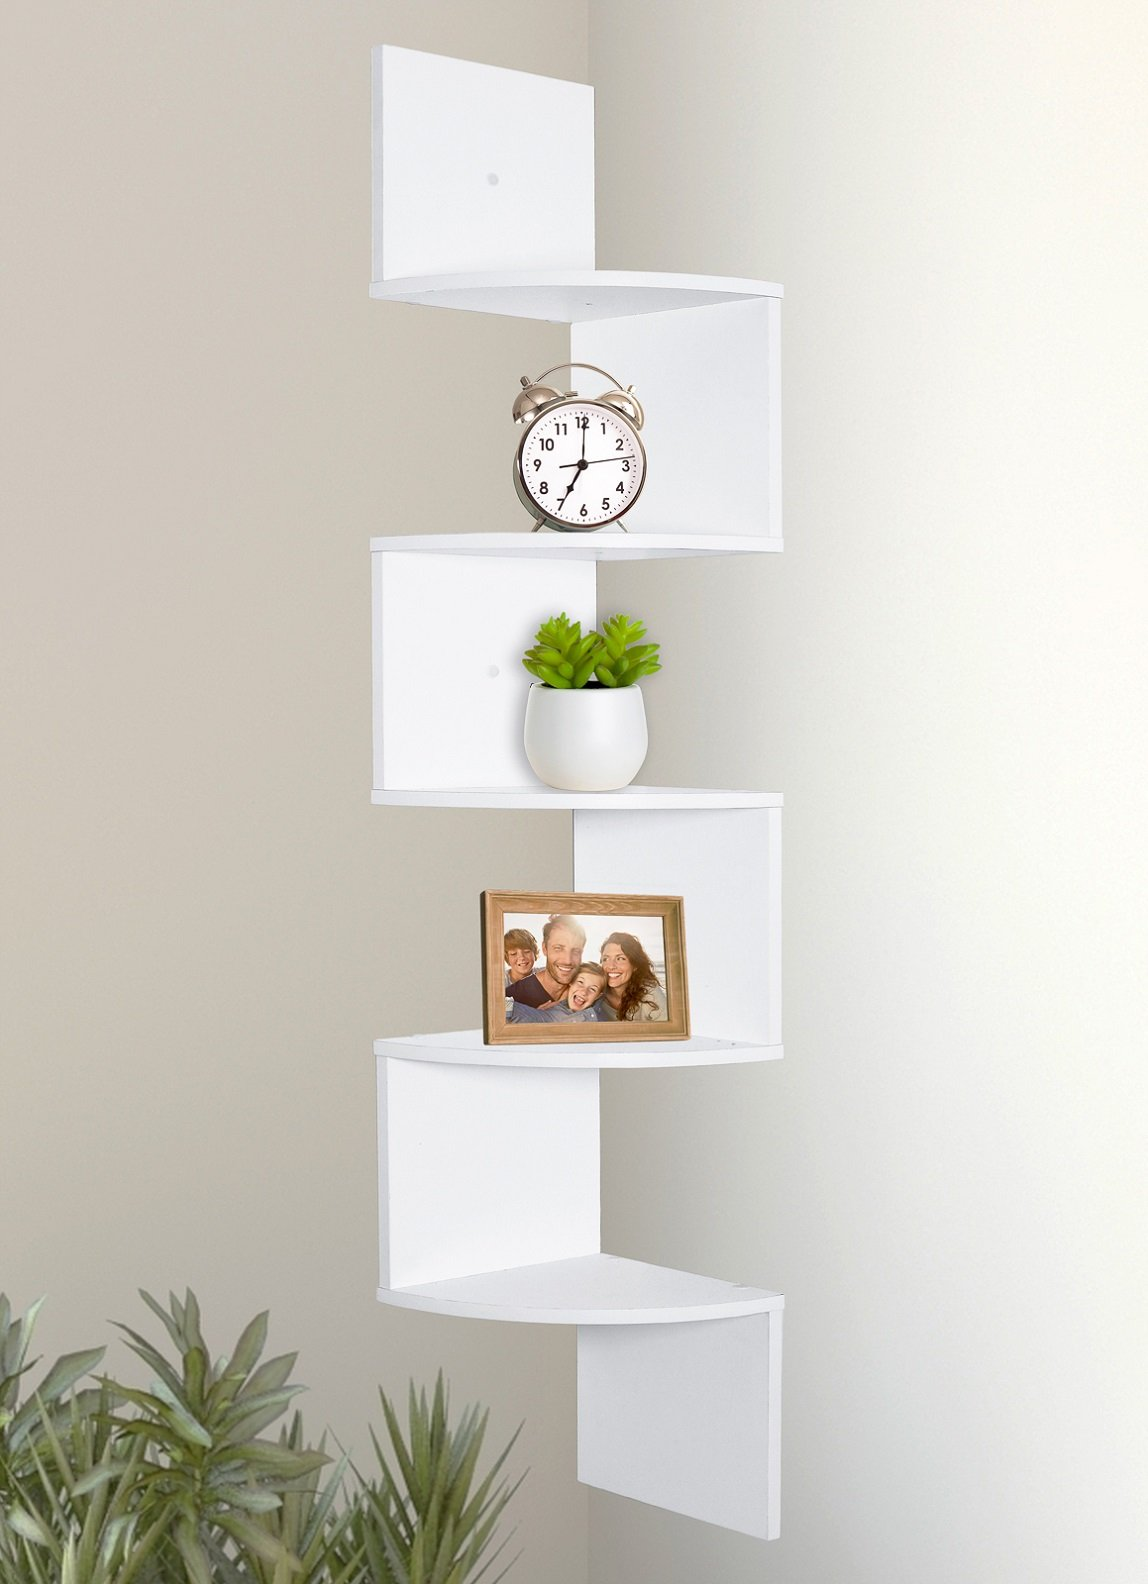 Greenco 5 Tier Wall Mount Corner Shelves White Finish by Greenco